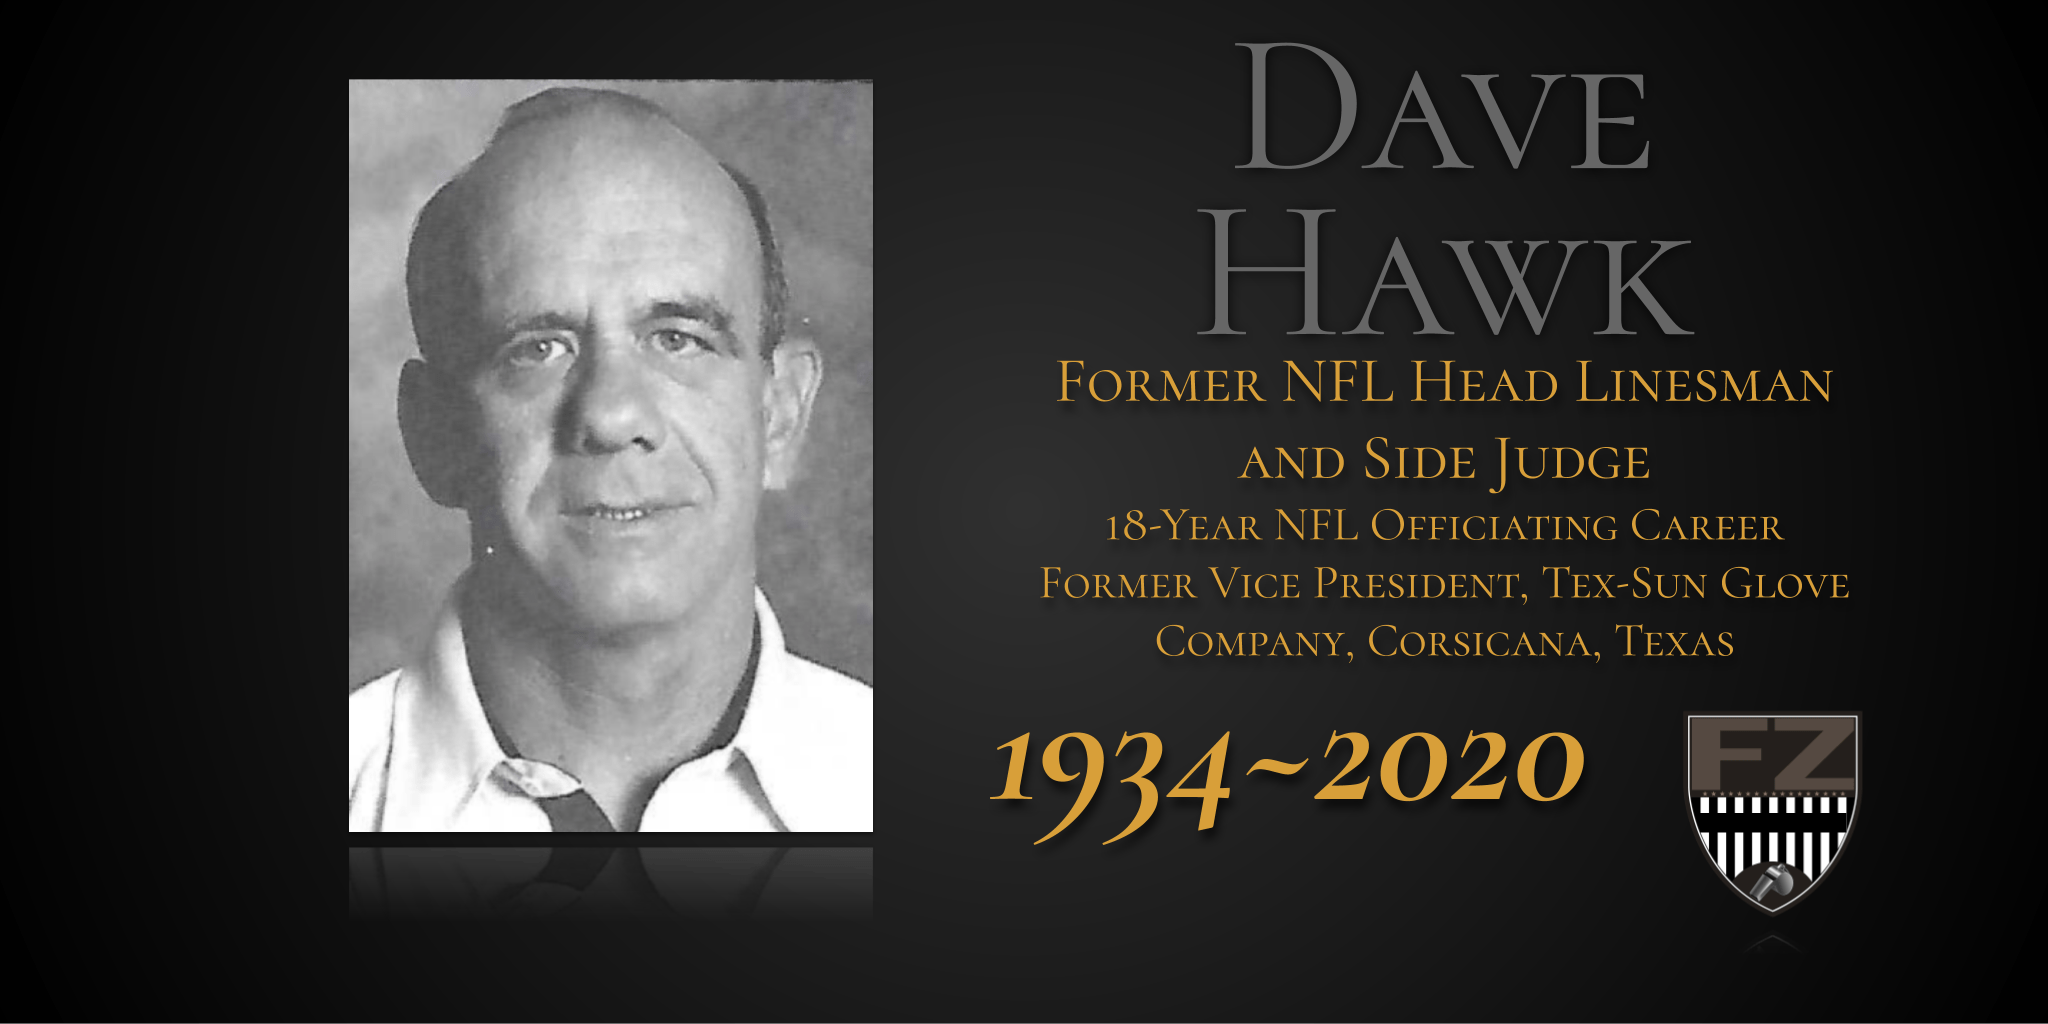 Former NFL official David Hawk has passed away